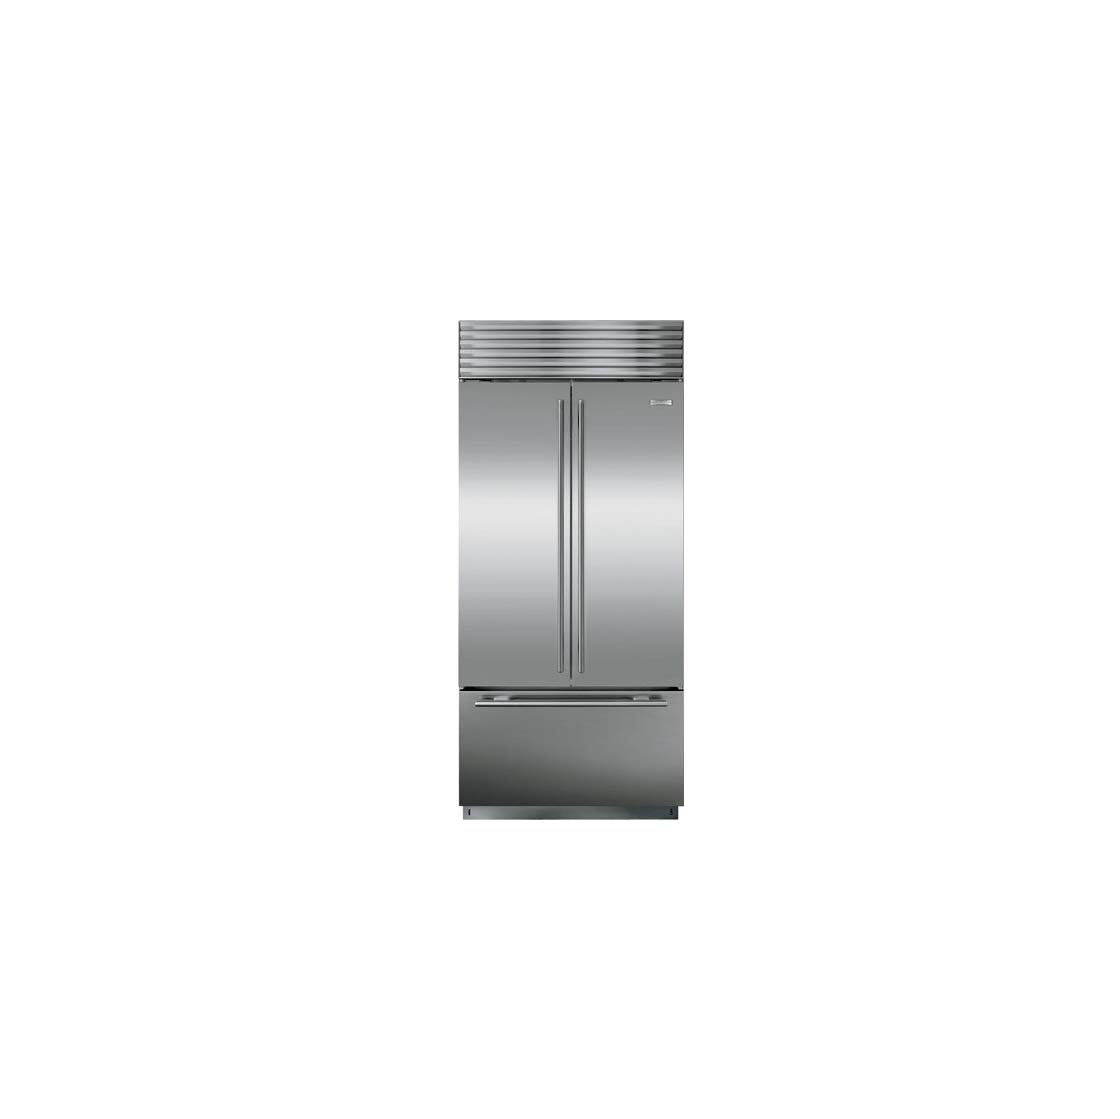 Viking 36 french door bottom freezer rurf336ss5 review price and liebherr french door refrigerator sub zero series refrigerator bi 36ufd rubansaba